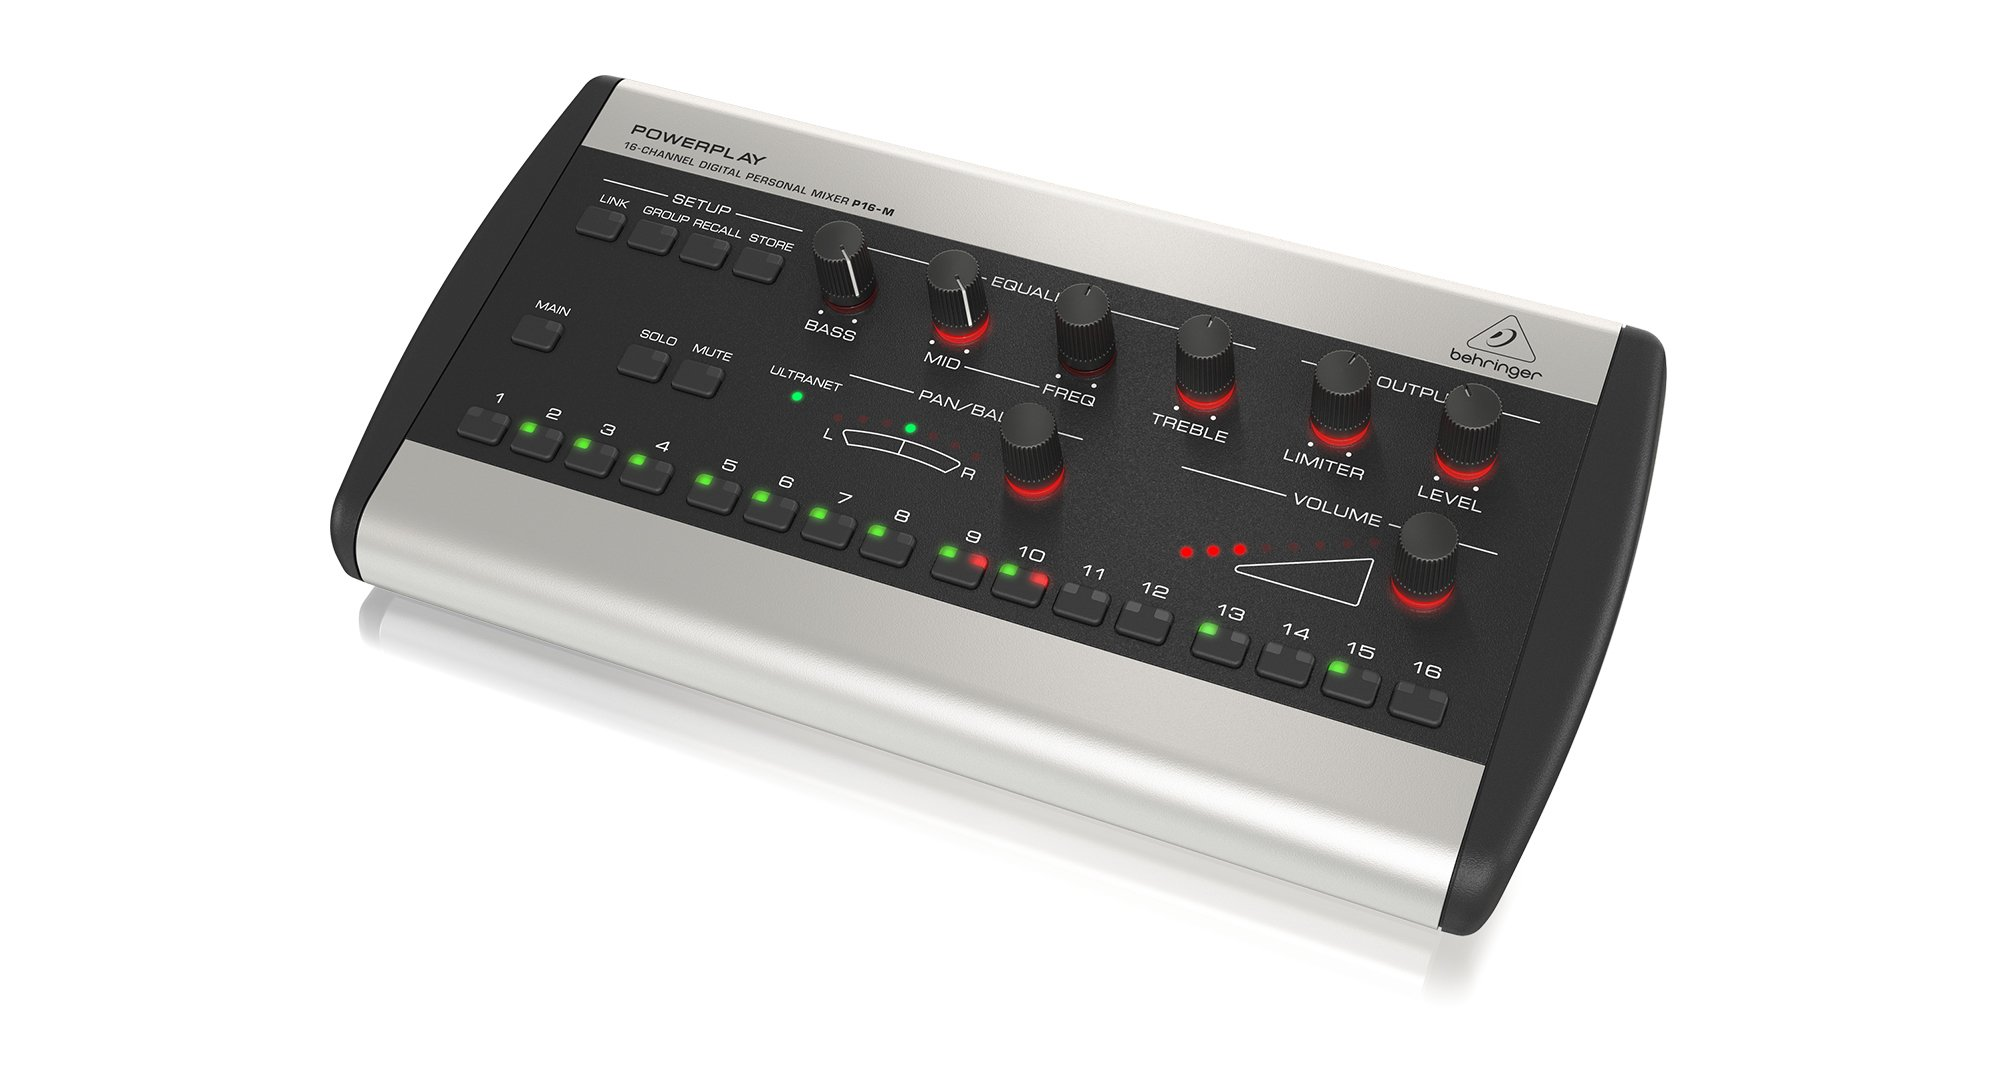 Powerplay 16-Channel Digital Personal Mixer